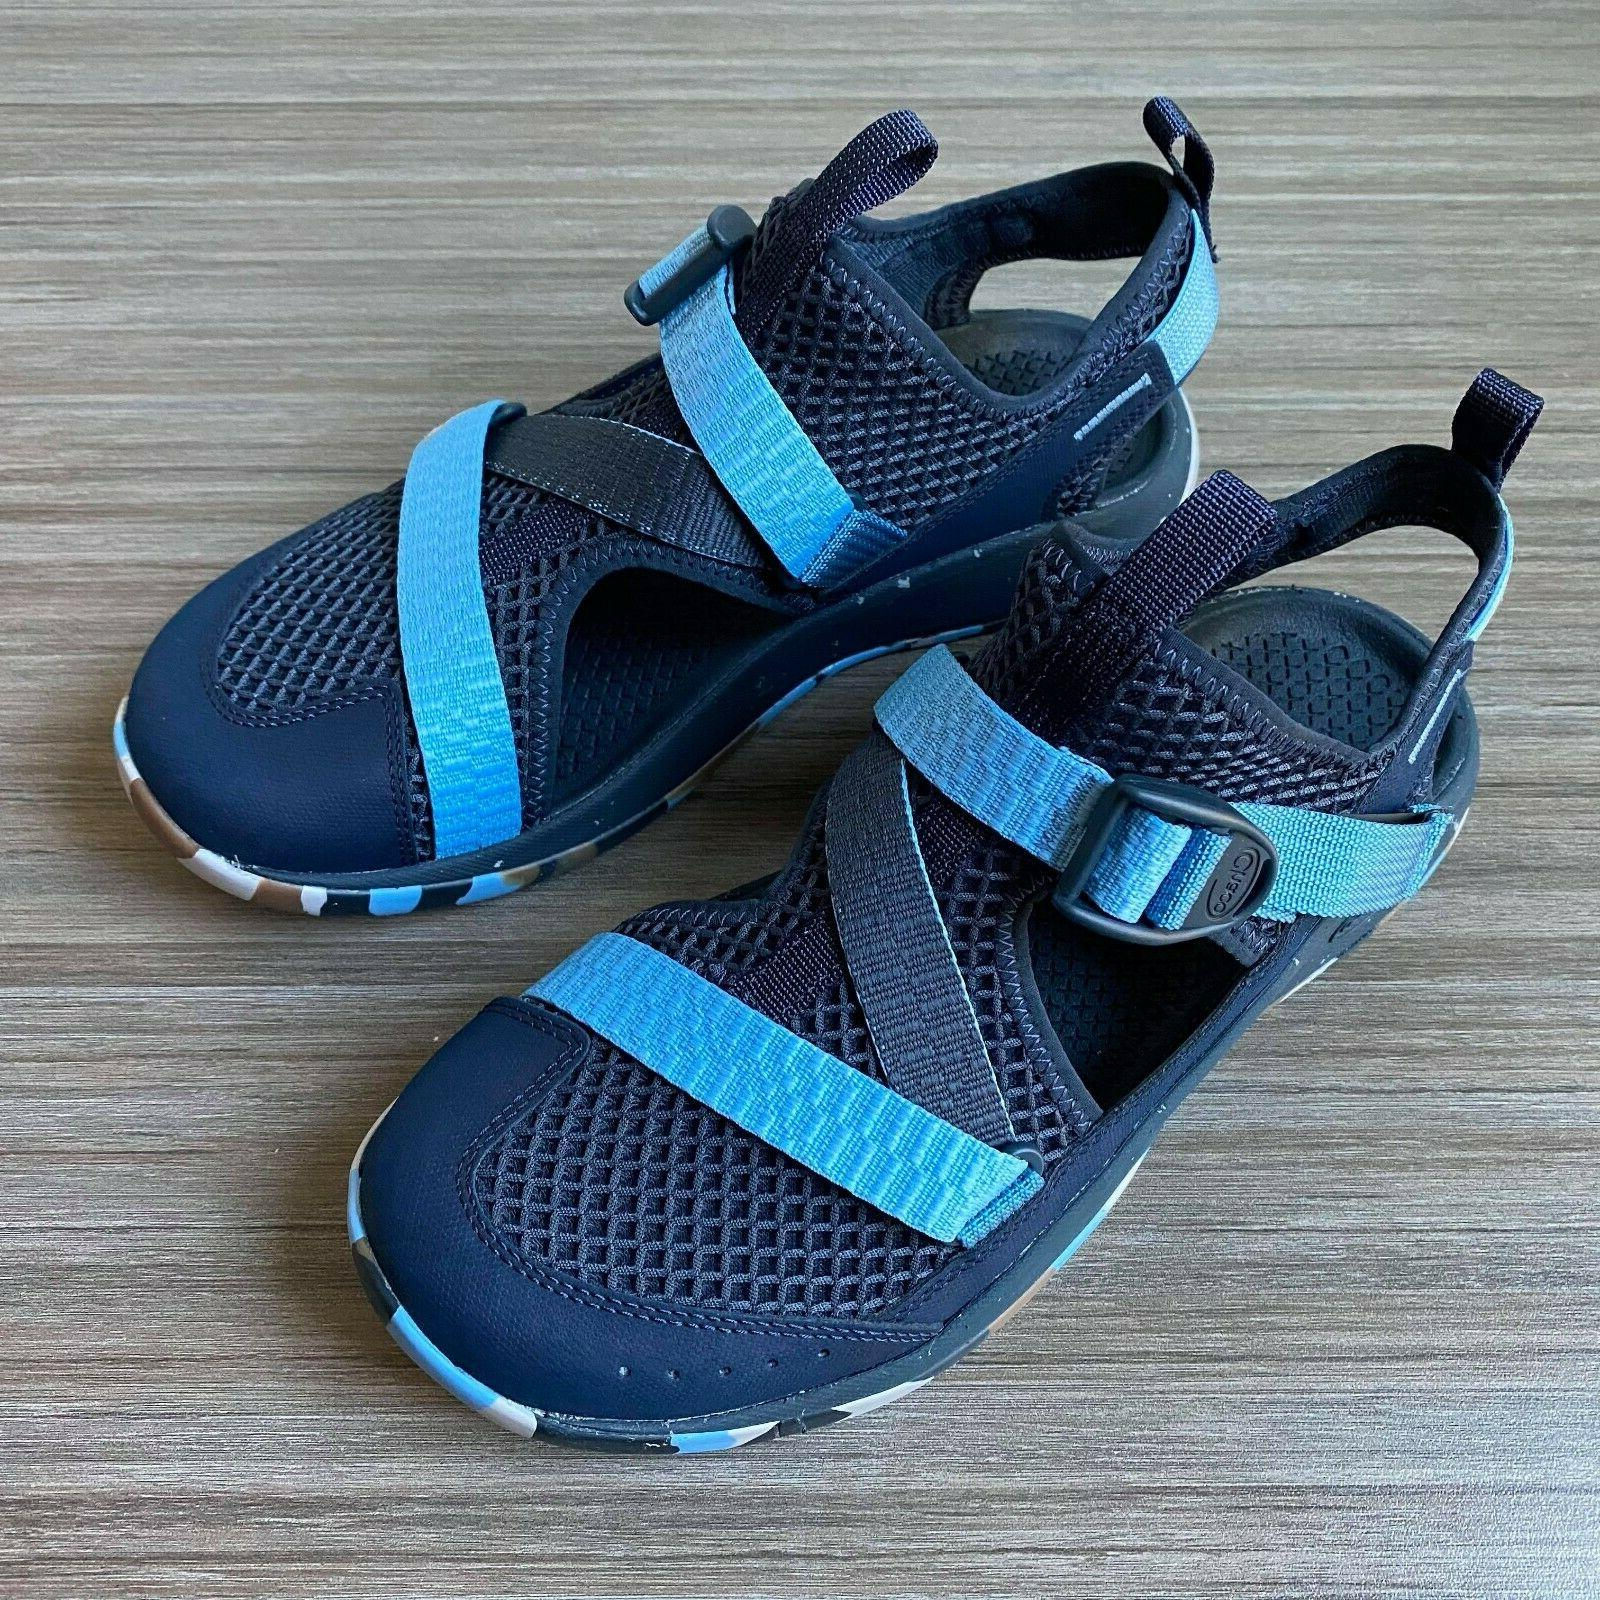 Chaco Water Shoes 7 $100